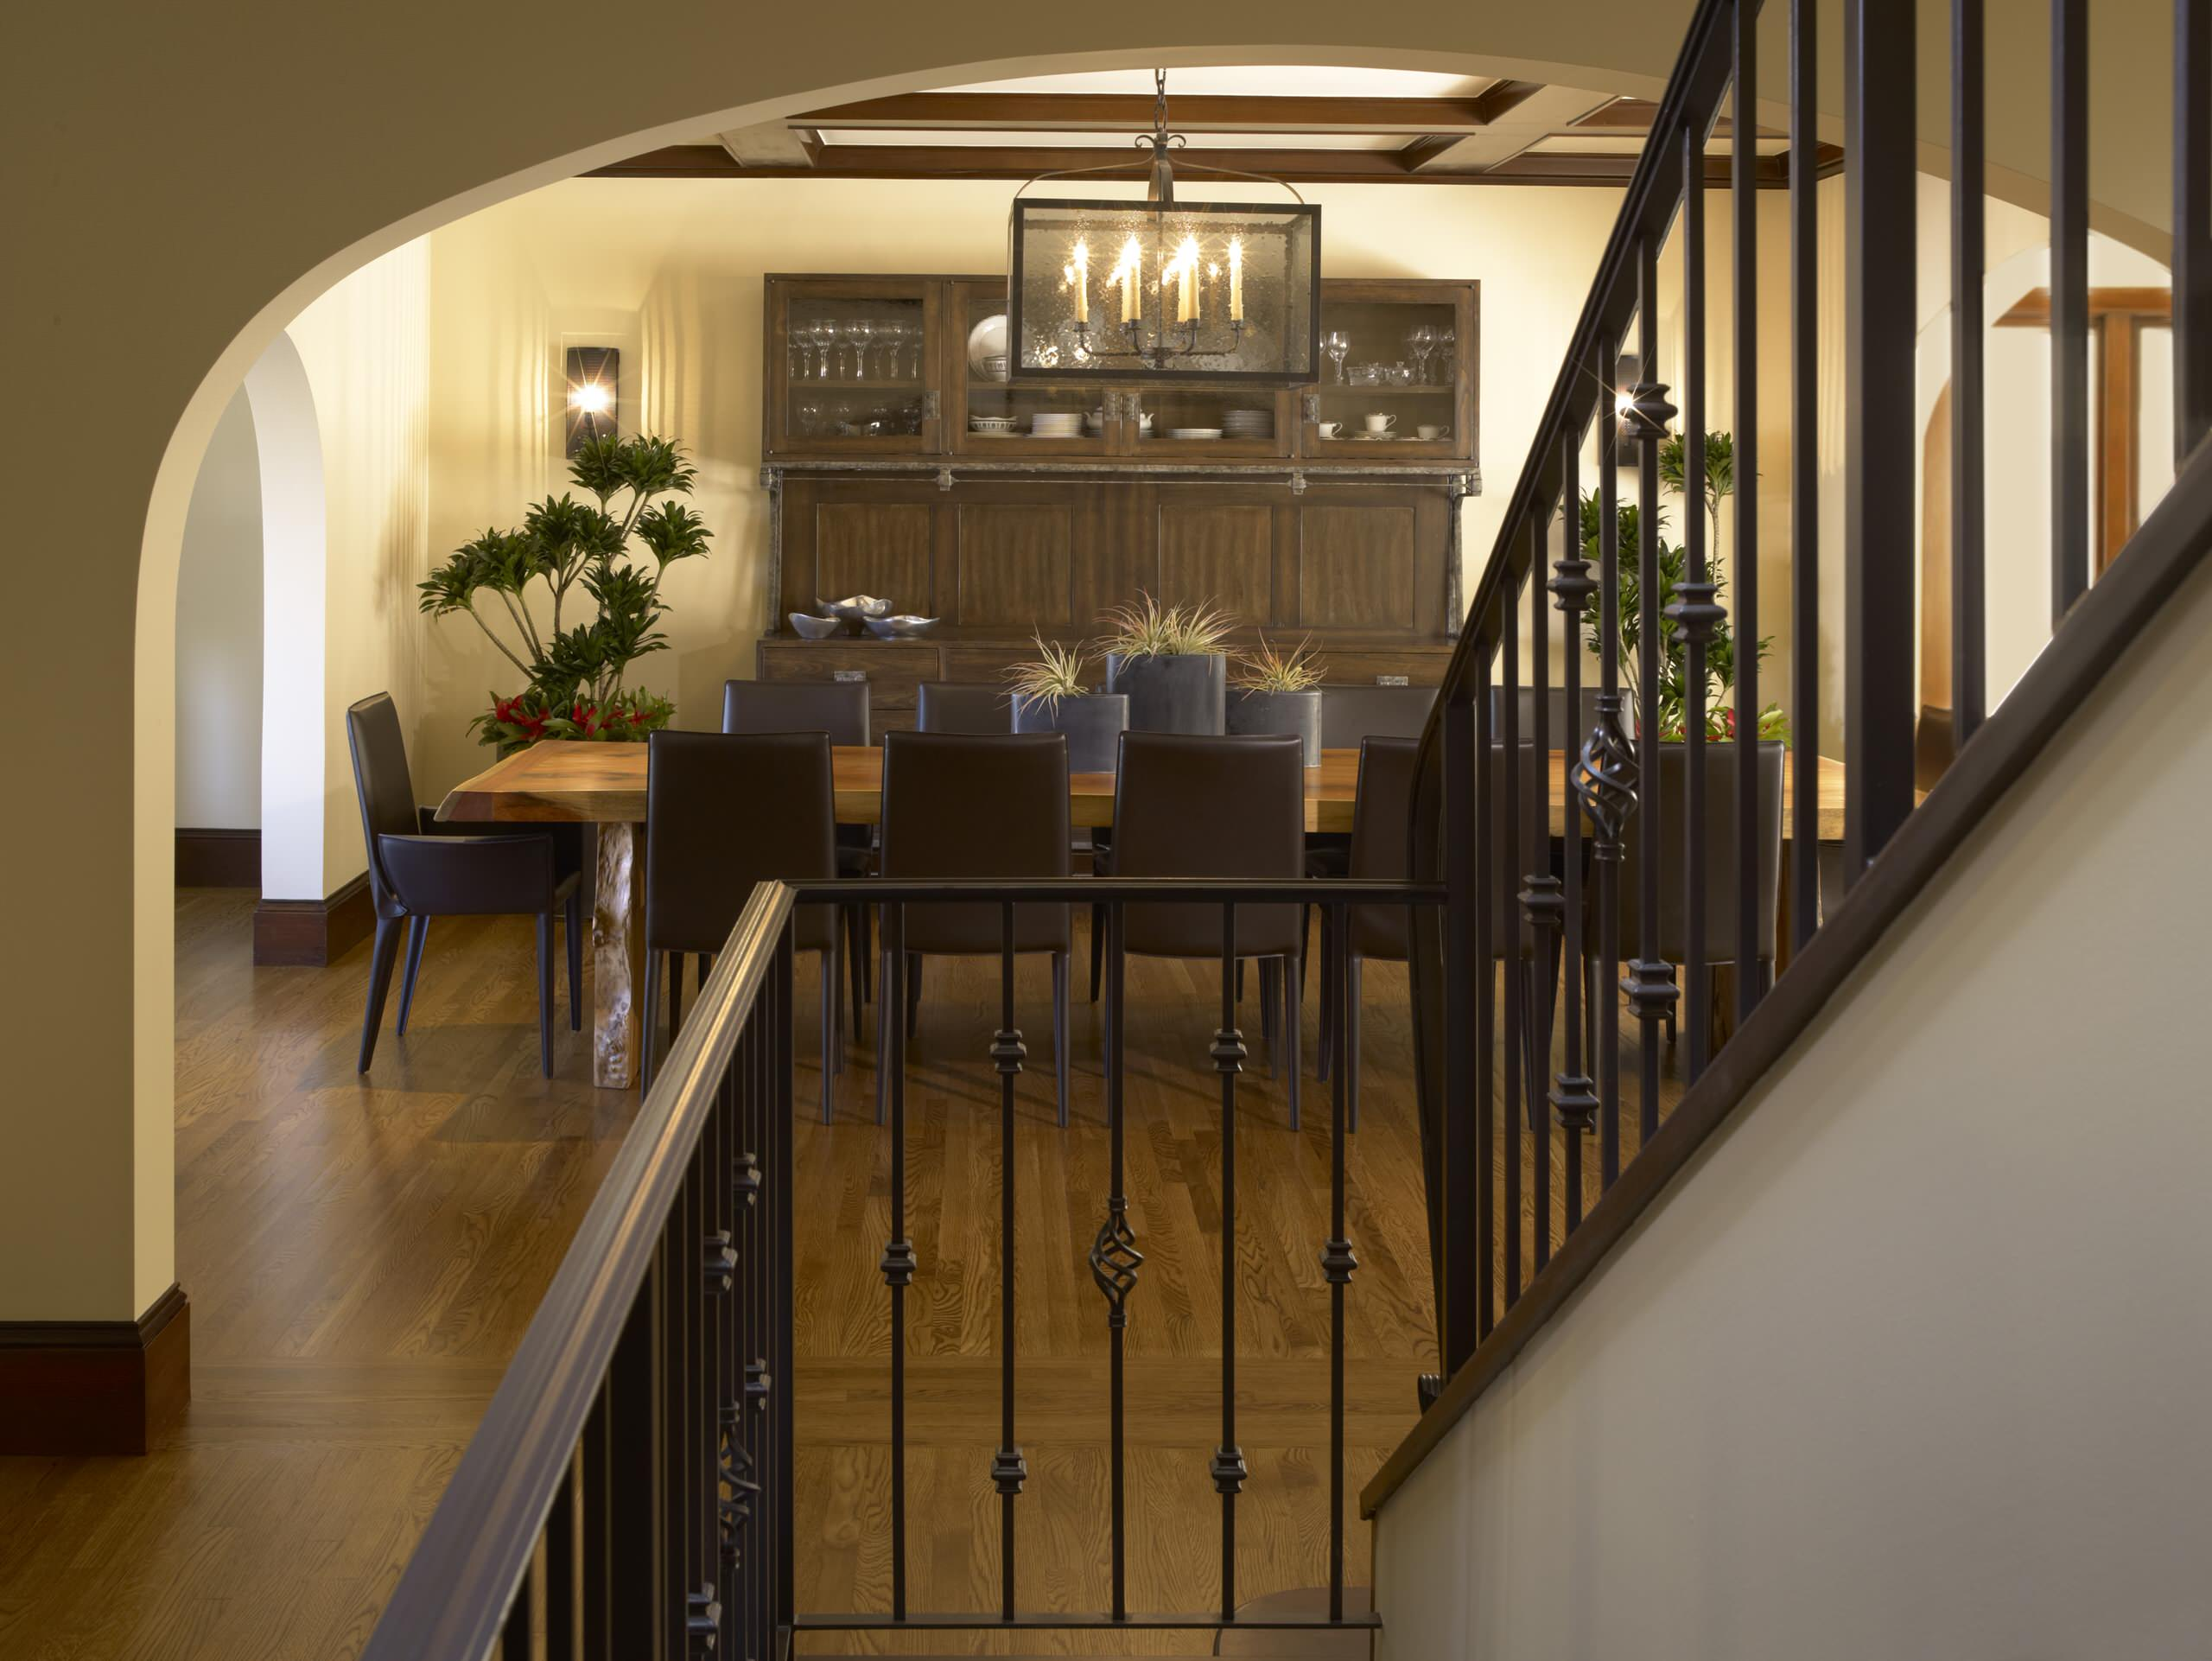 Inspiring Iron Railings Design for Staircase at Your Home: Archway In Traditional Dining Room Plus Chandelier With Coffered Ceiling Also Dining Buffet And House Plants With Leather Dining Chairs And Neutral Colors Also Wall Sconce Plus Iron Railings